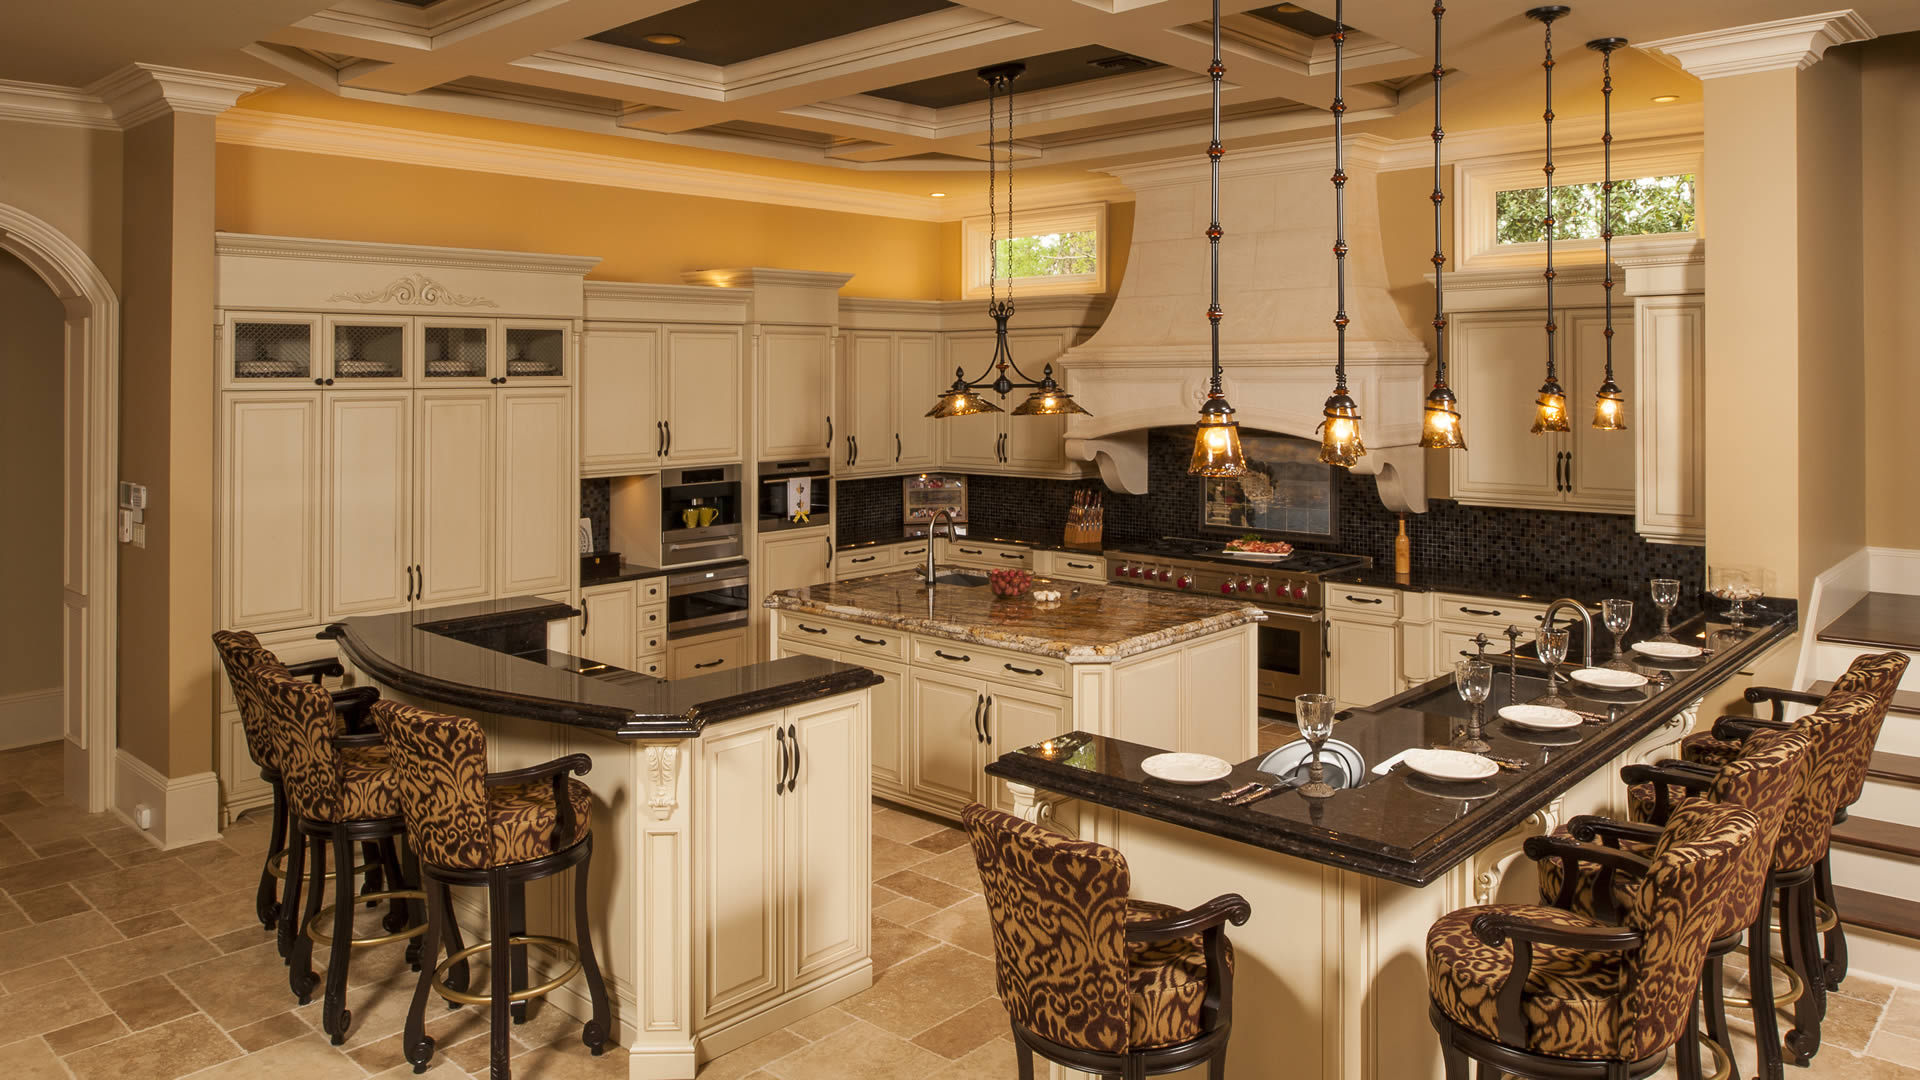 Upscale Kitchen Bath Cabinetry Traditional Contemporary And Transitional Styles Nordic Kitchens Baths Inc